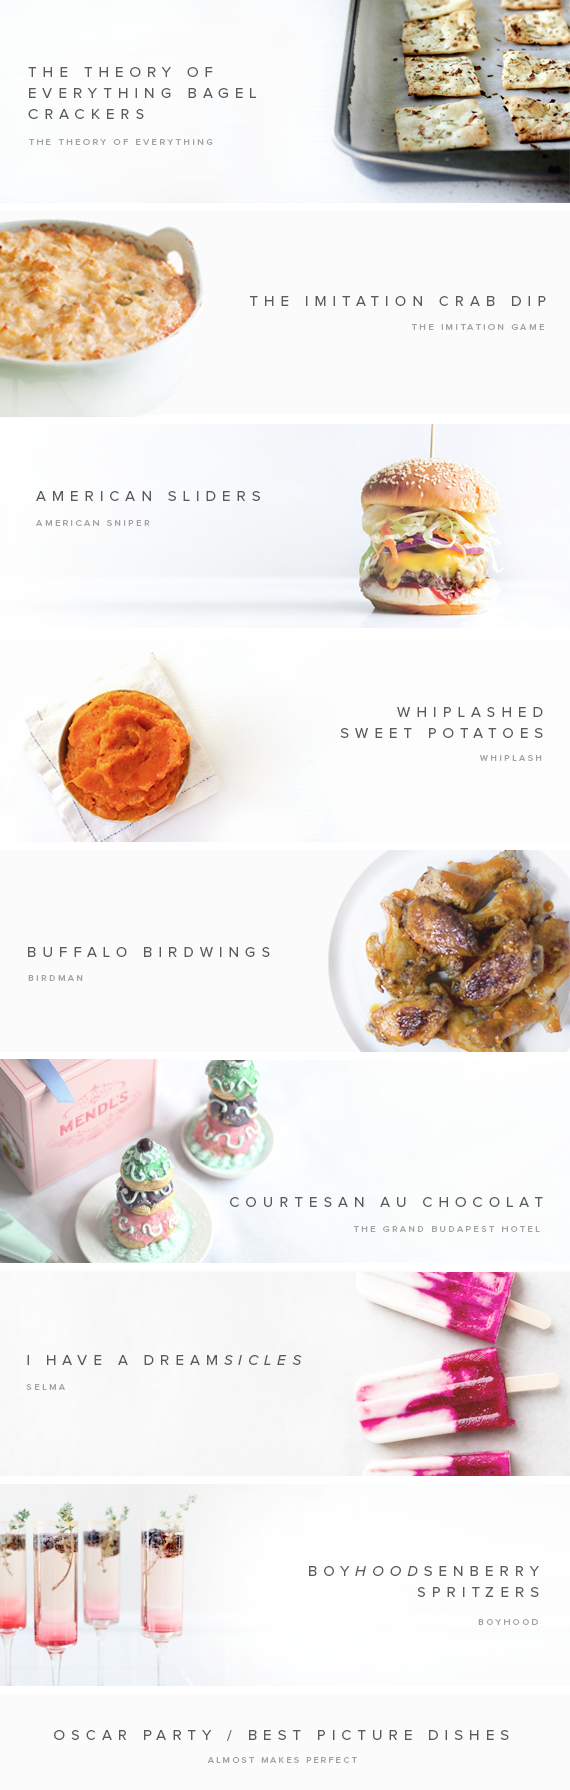 oscar party themed dishes | almost makes perfect